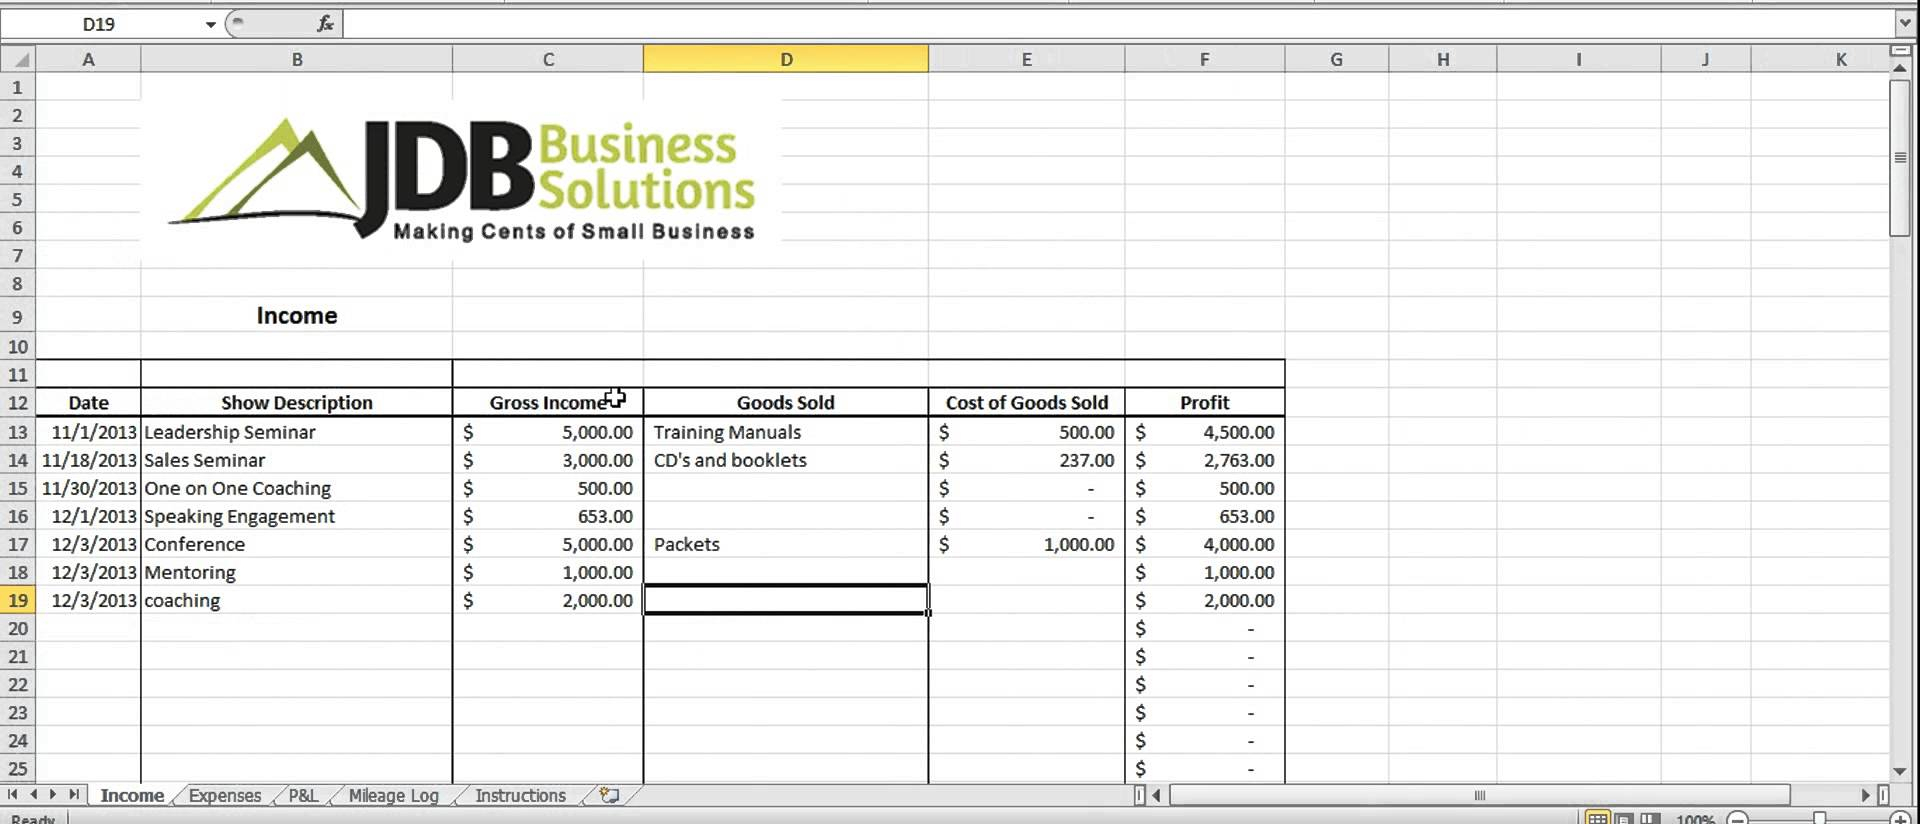 How To Make A Business Spreadsheet With How To Make Business Spreadsheet Budget Expense Template Basic